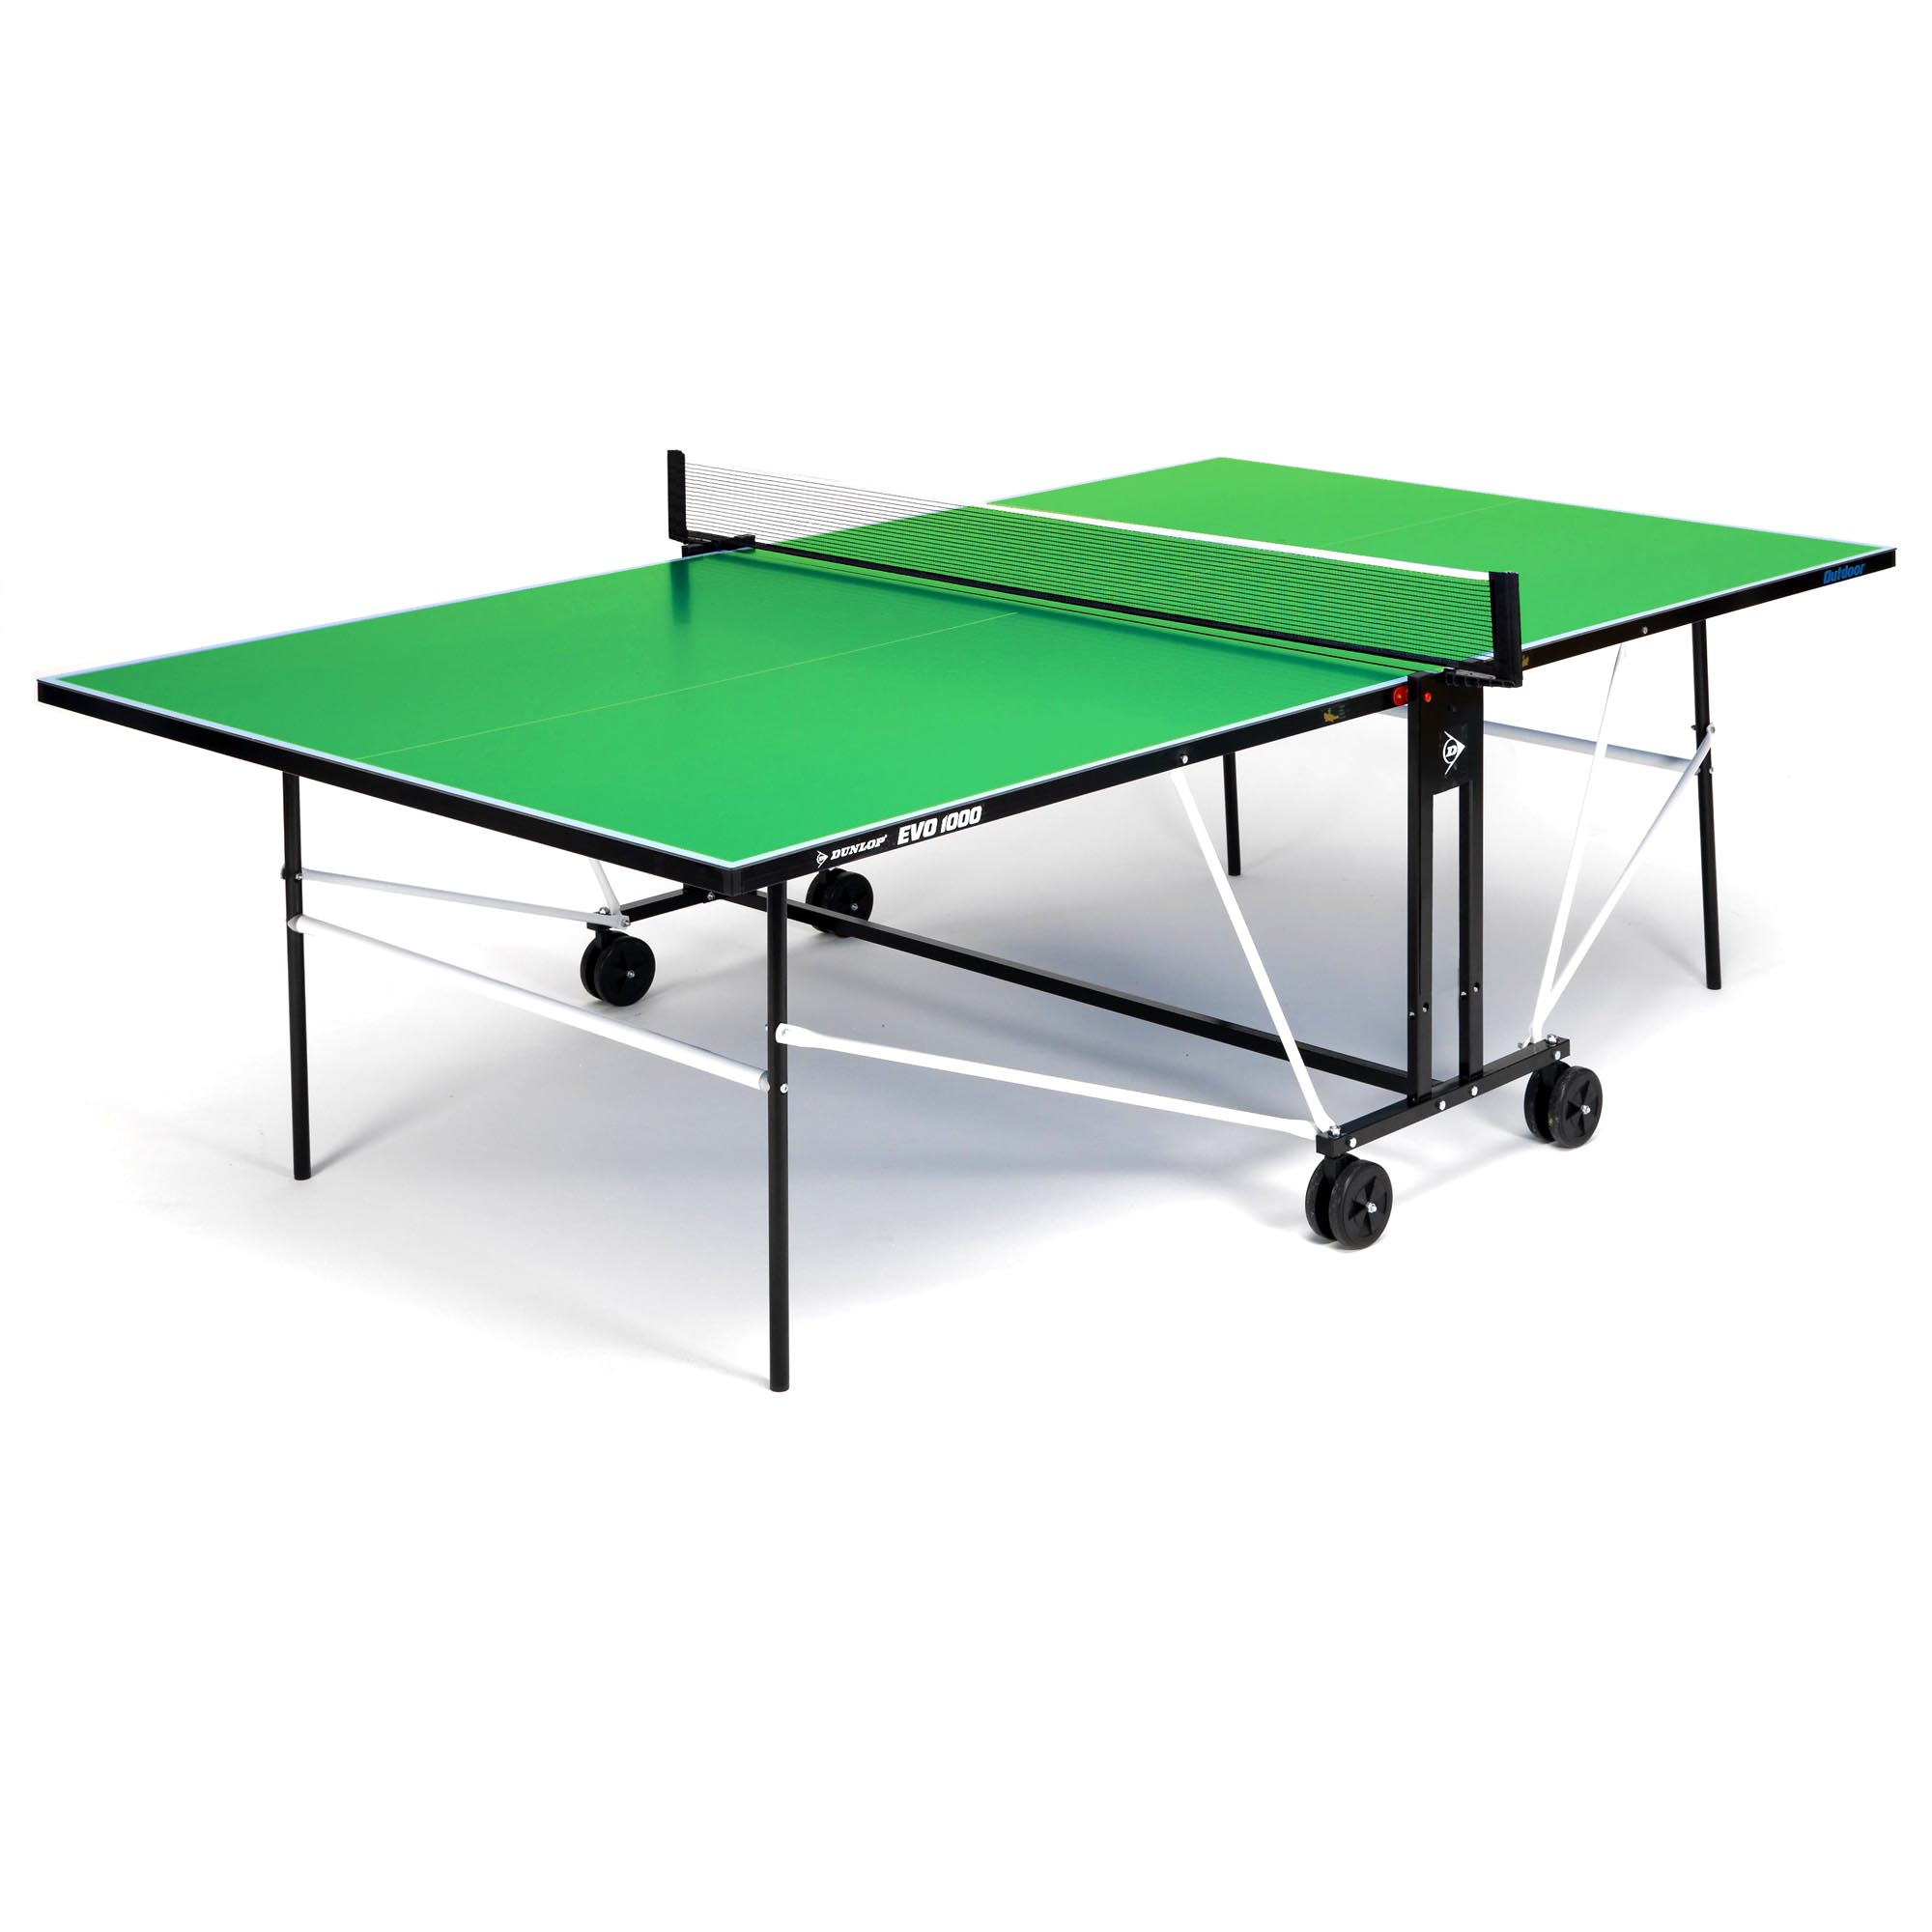 Outdoor table tennis table shop for cheap tables and save online - Weatherproof table tennis table ...